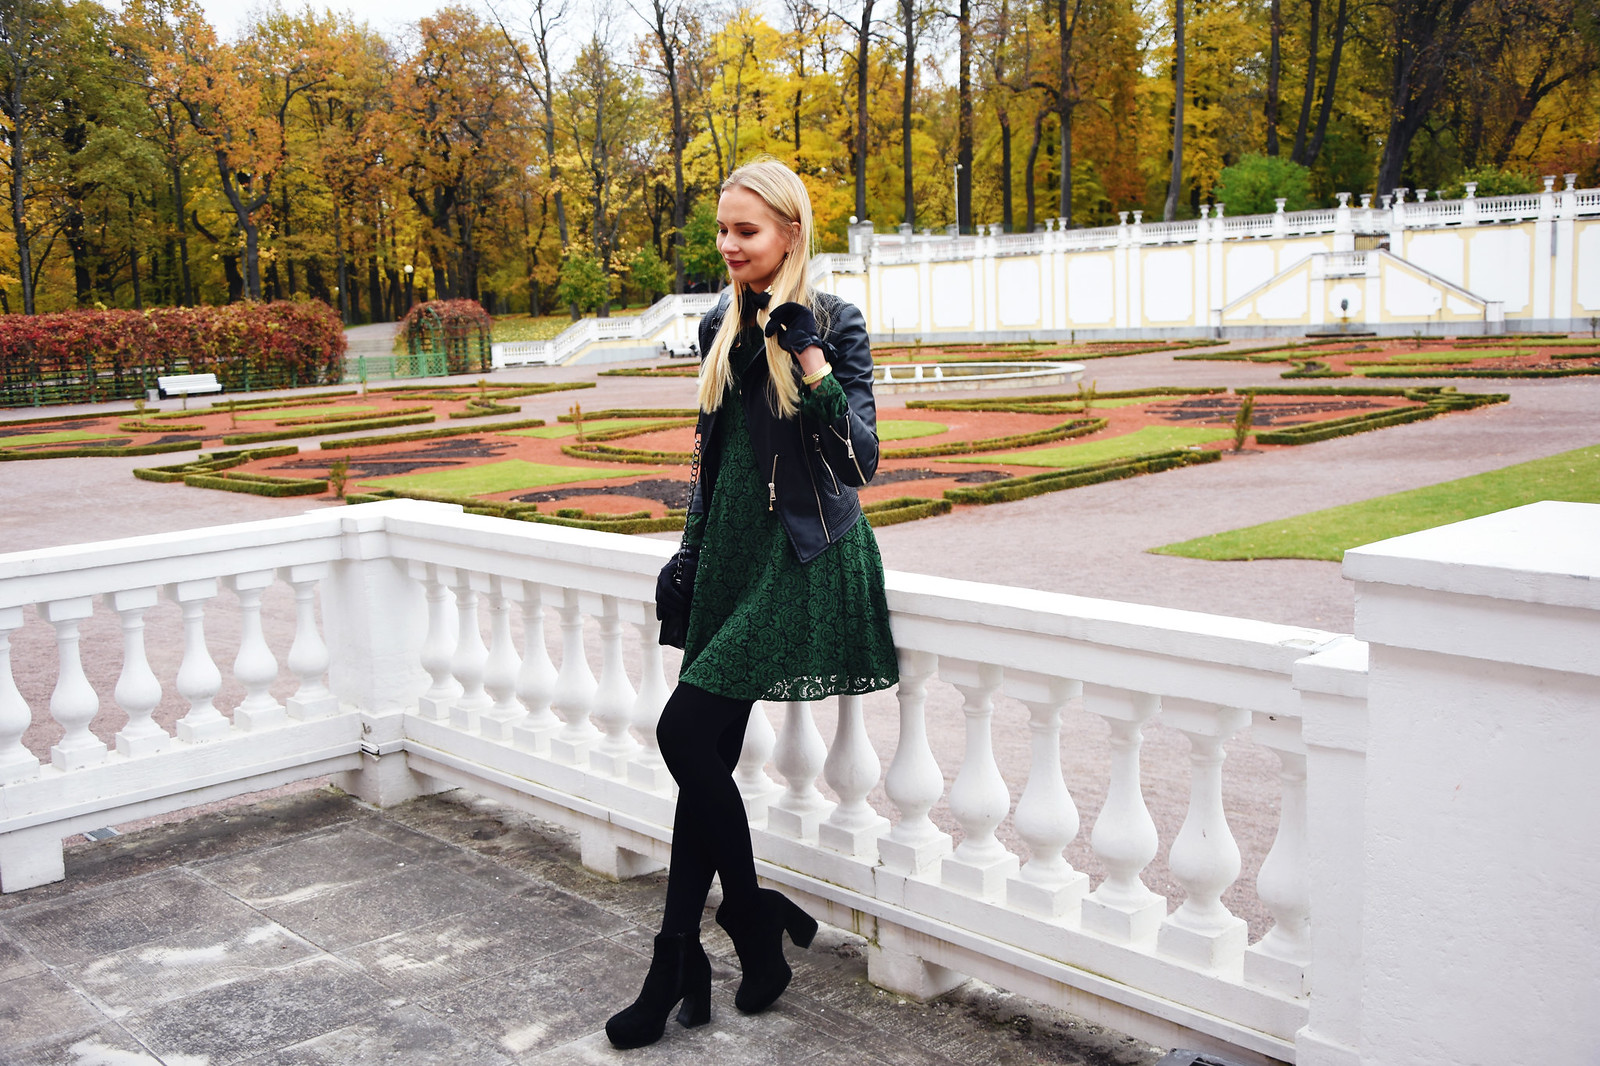 Styling a green lace dress